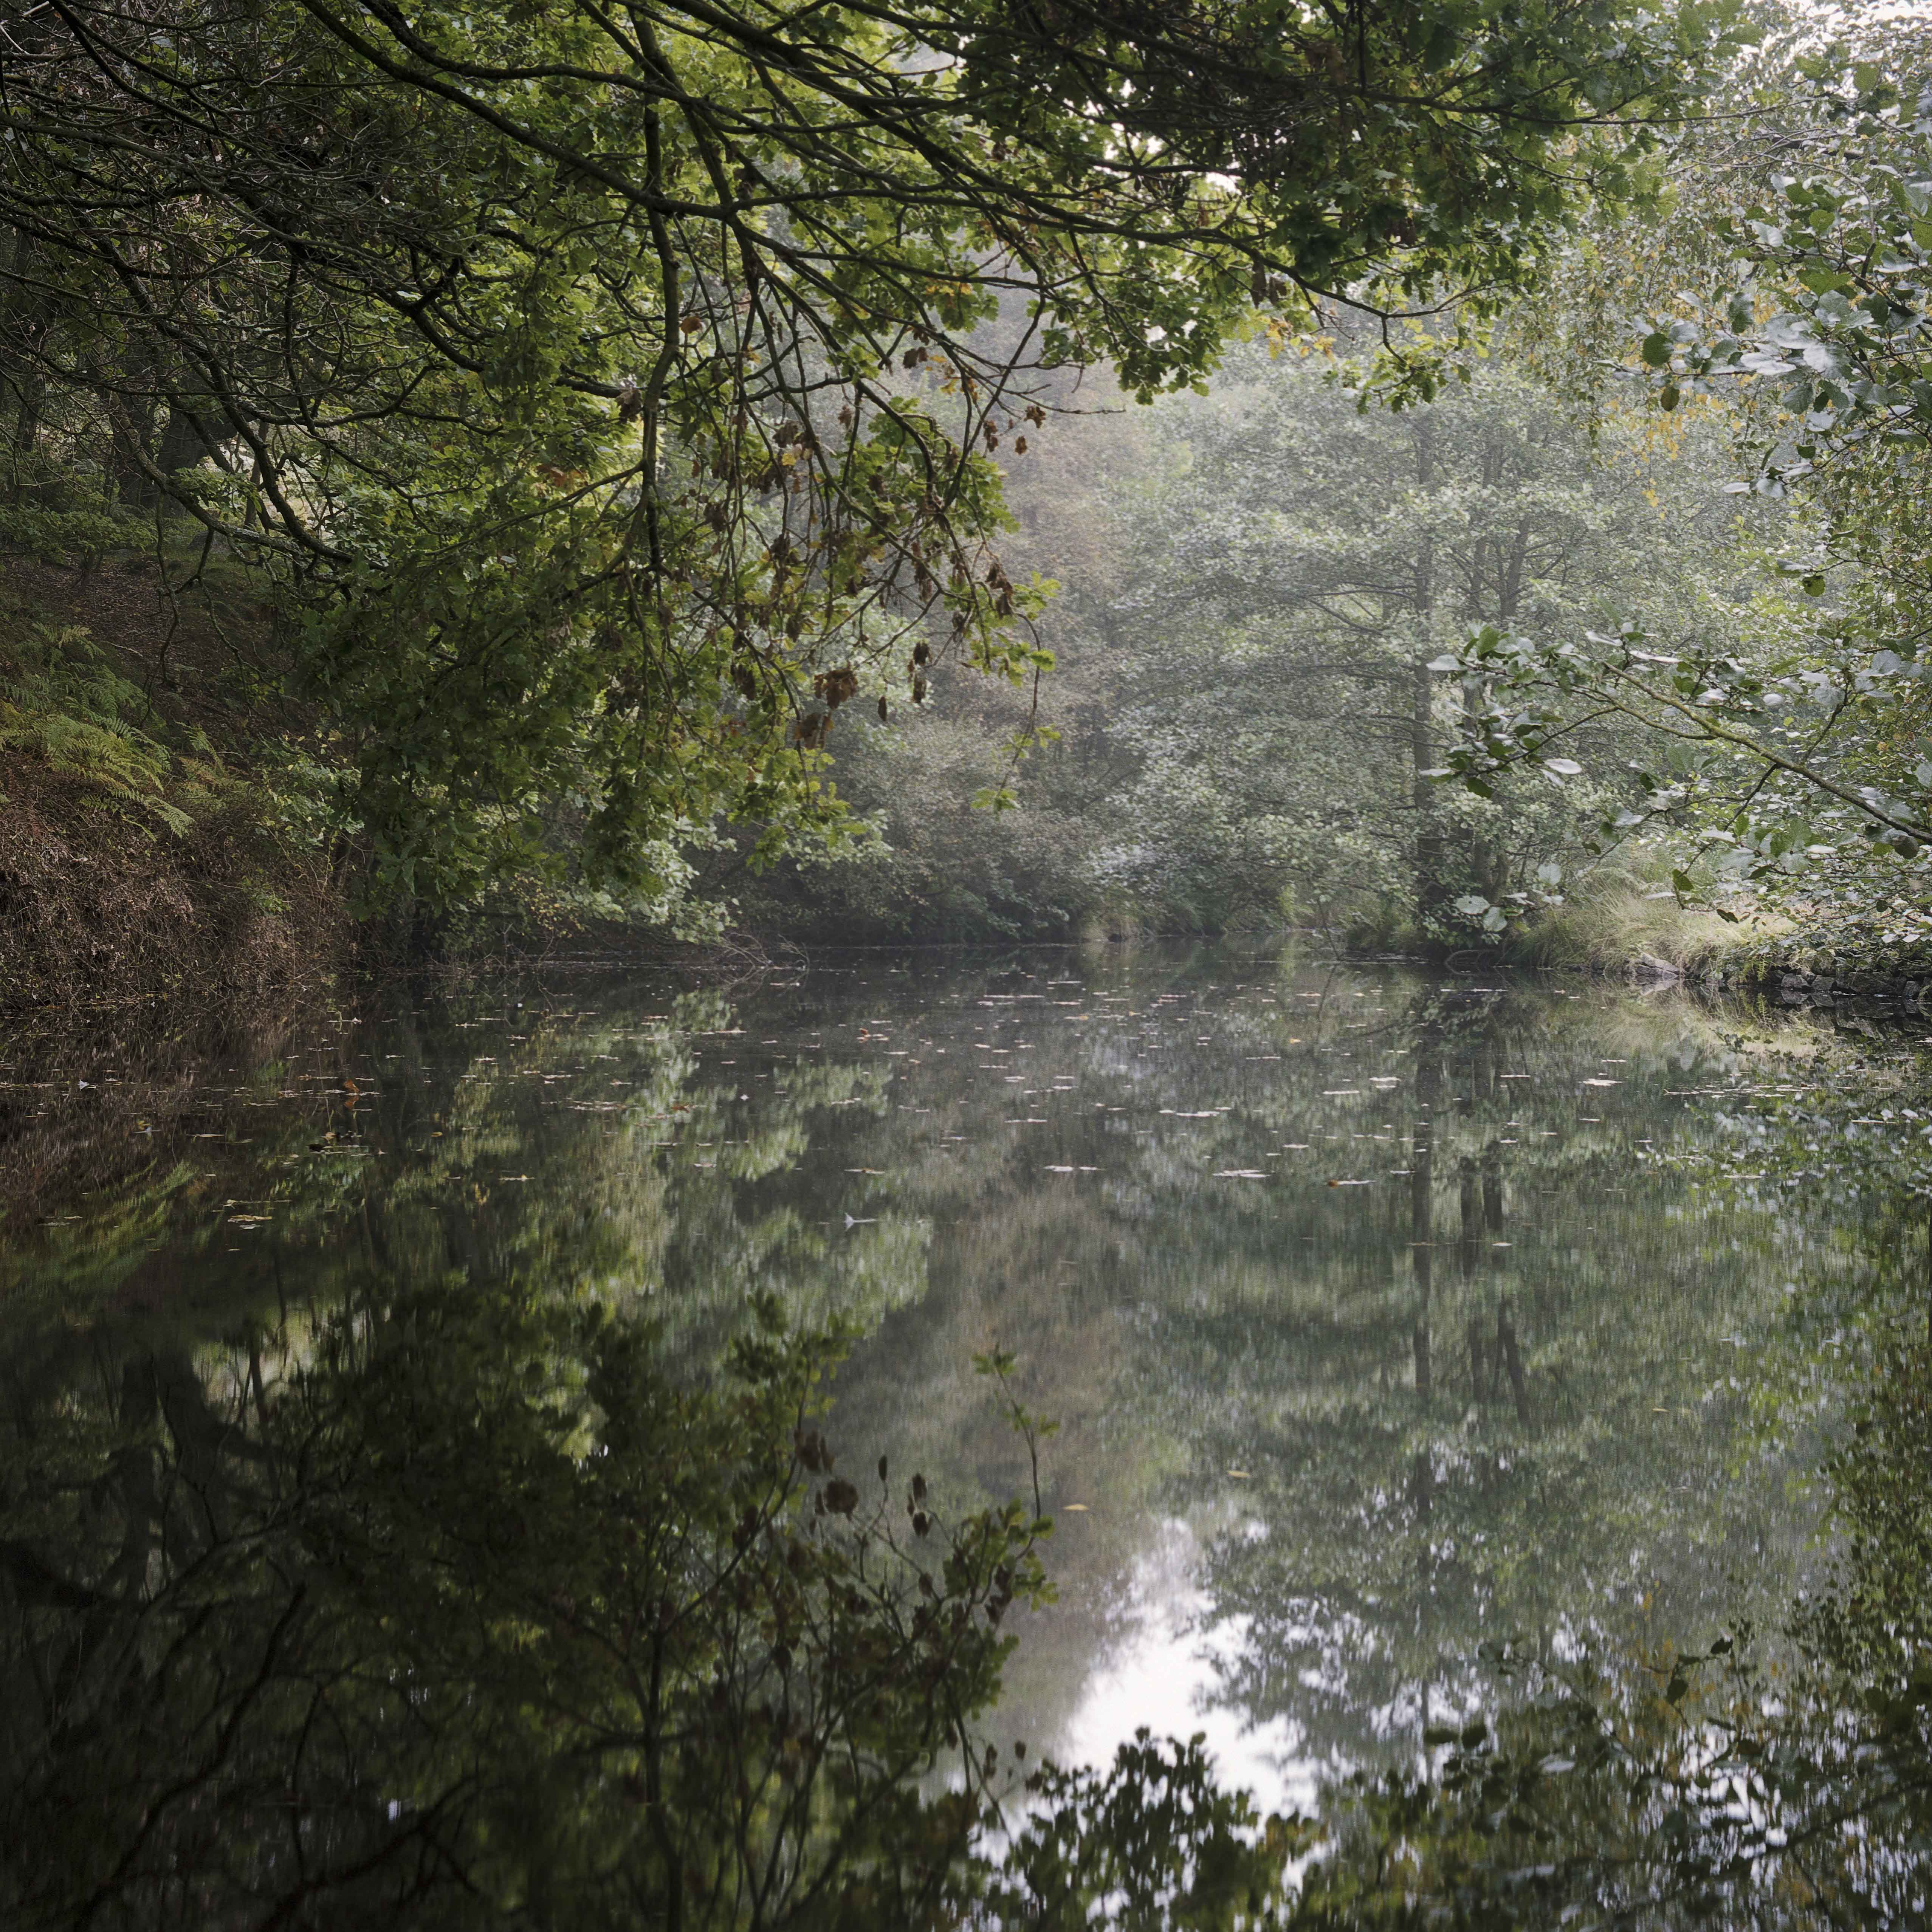 millpond trees calm peak district